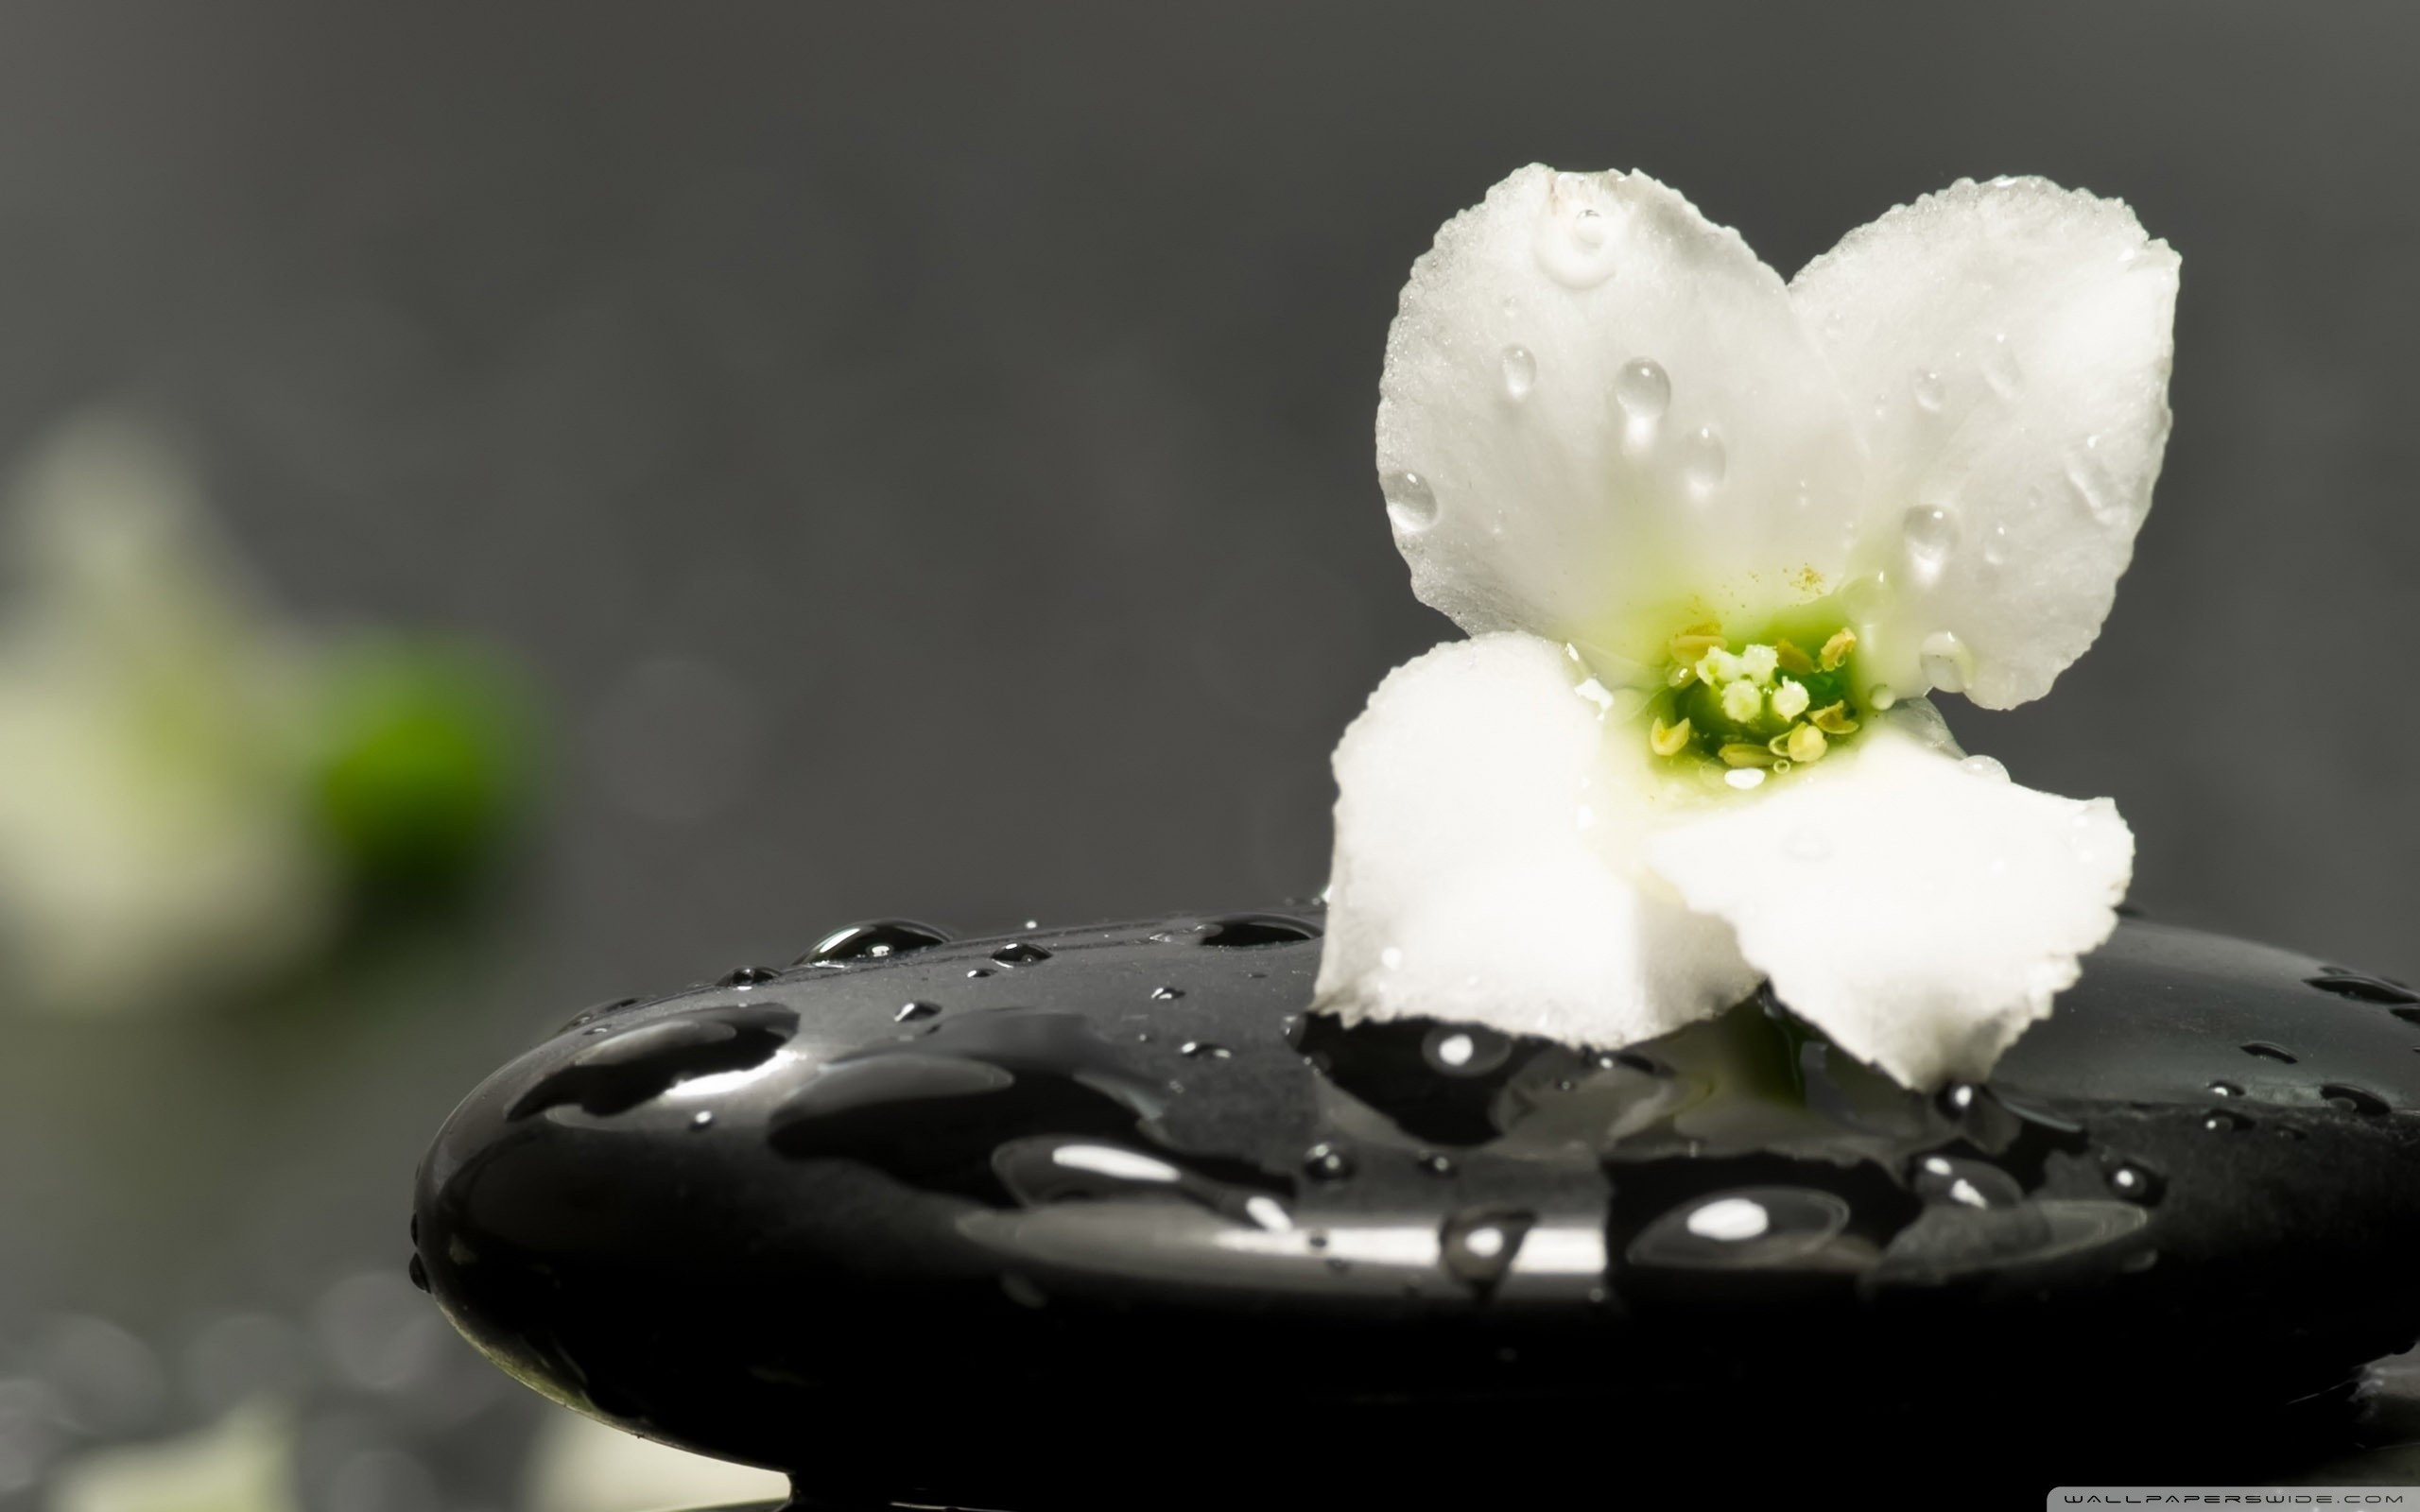 Zen Wallpaper 1920x1080: Zen Background ·① Download Free Stunning HD Backgrounds